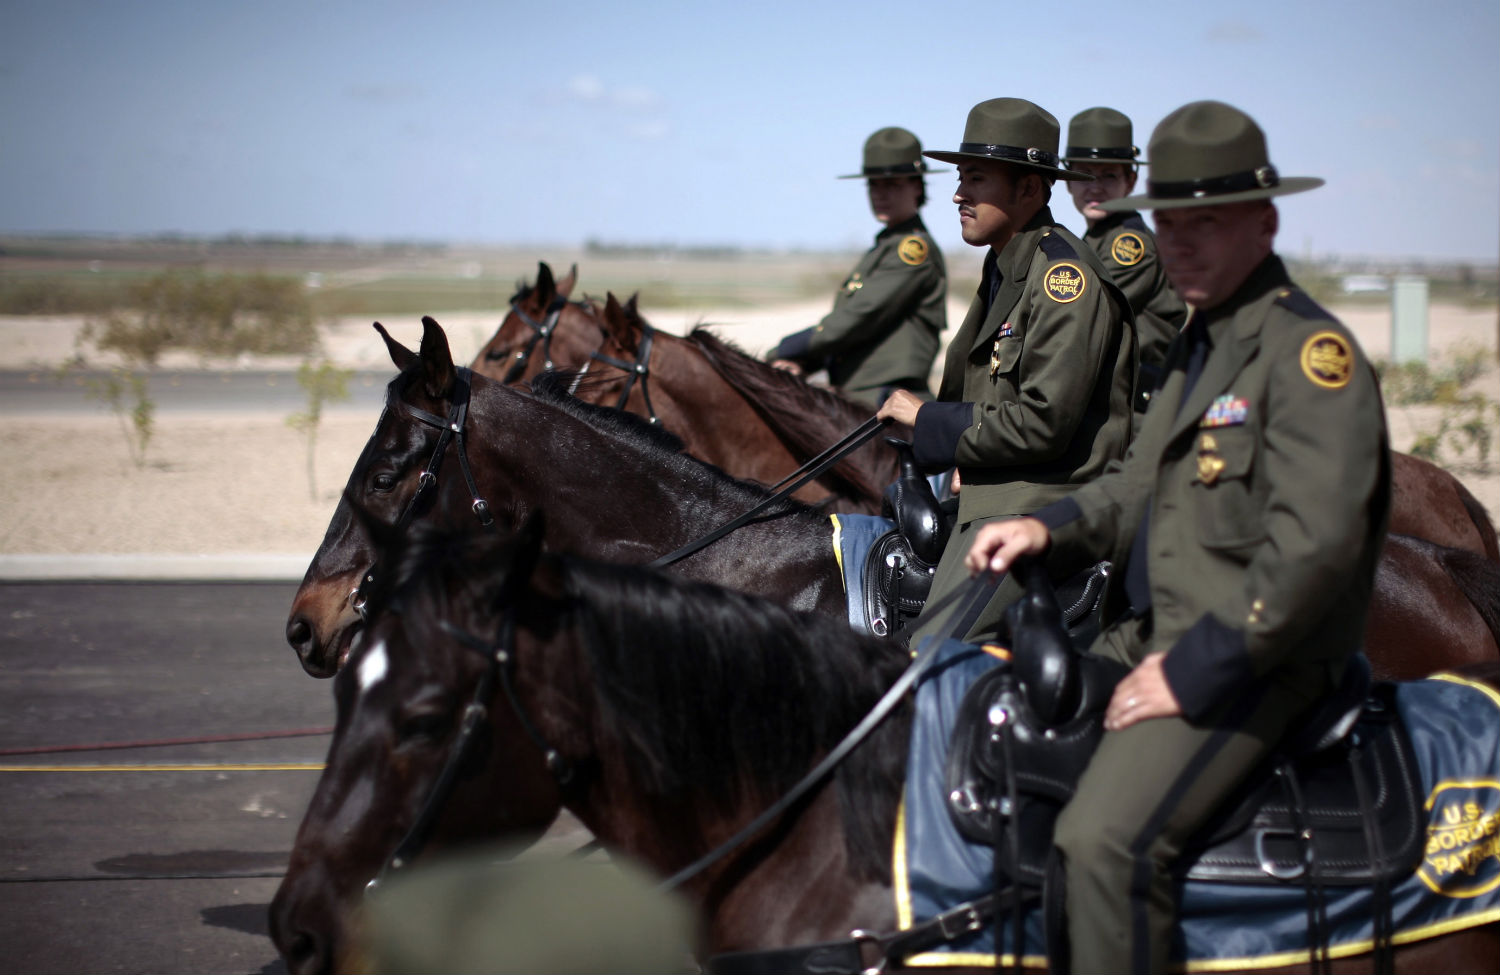 16,500 American Border Patrol Agents Gather Together And Support